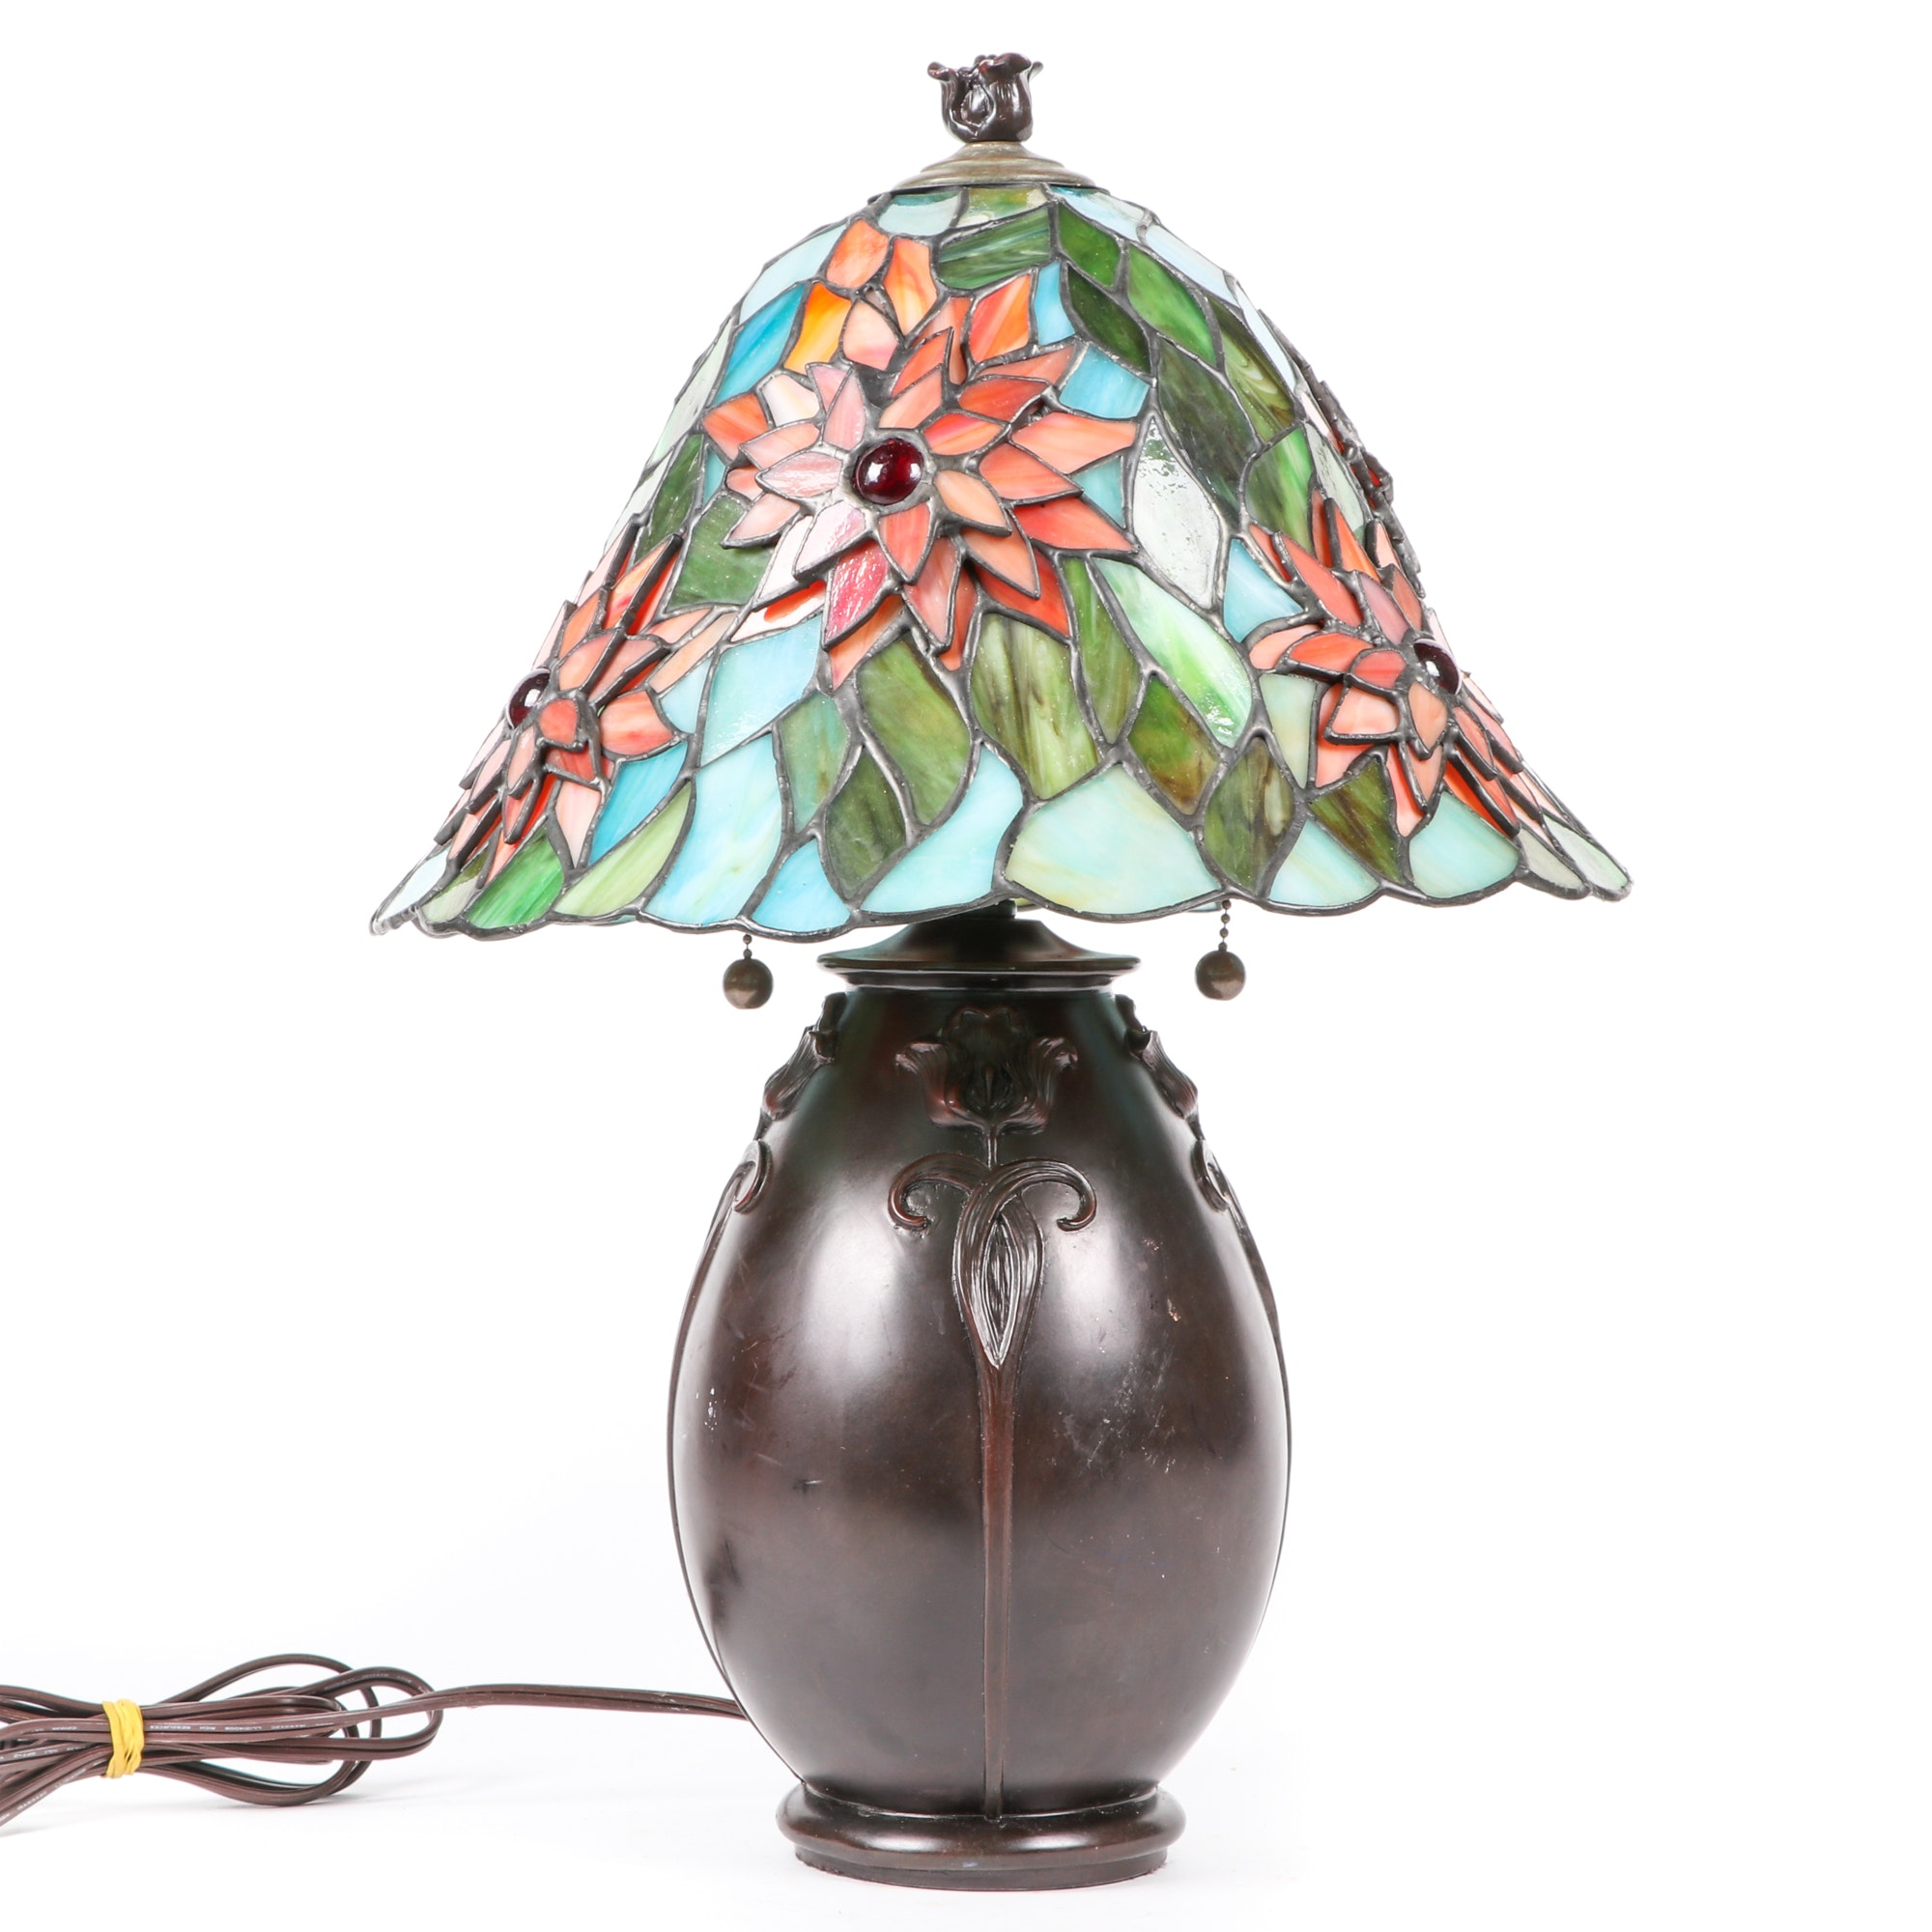 Art Nouveau Style Table Lamp with Three-Dimensional Slag Glass Shade